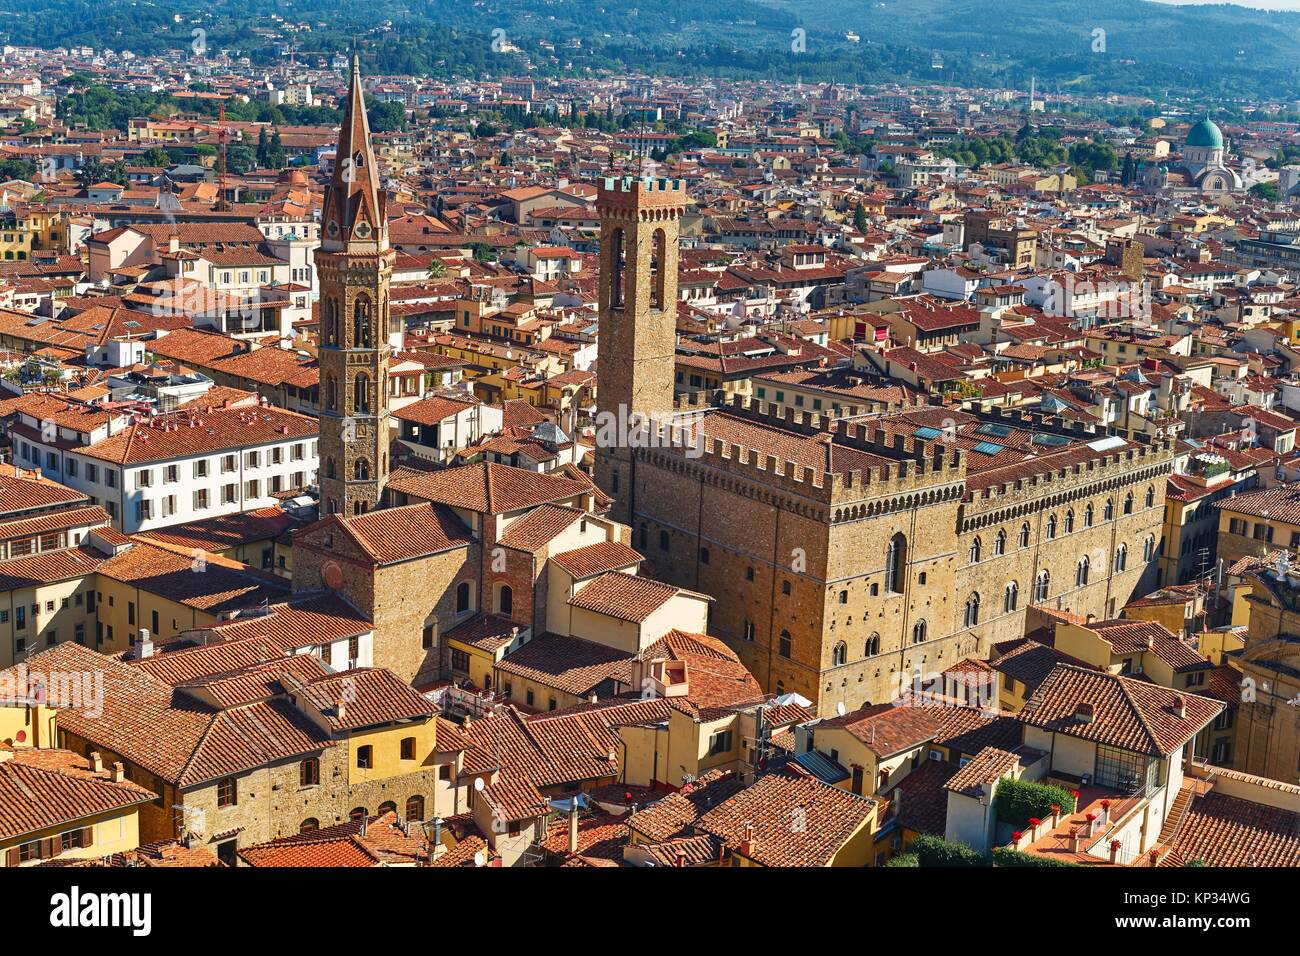 Cityscape of Florence, Italy - Stock Image